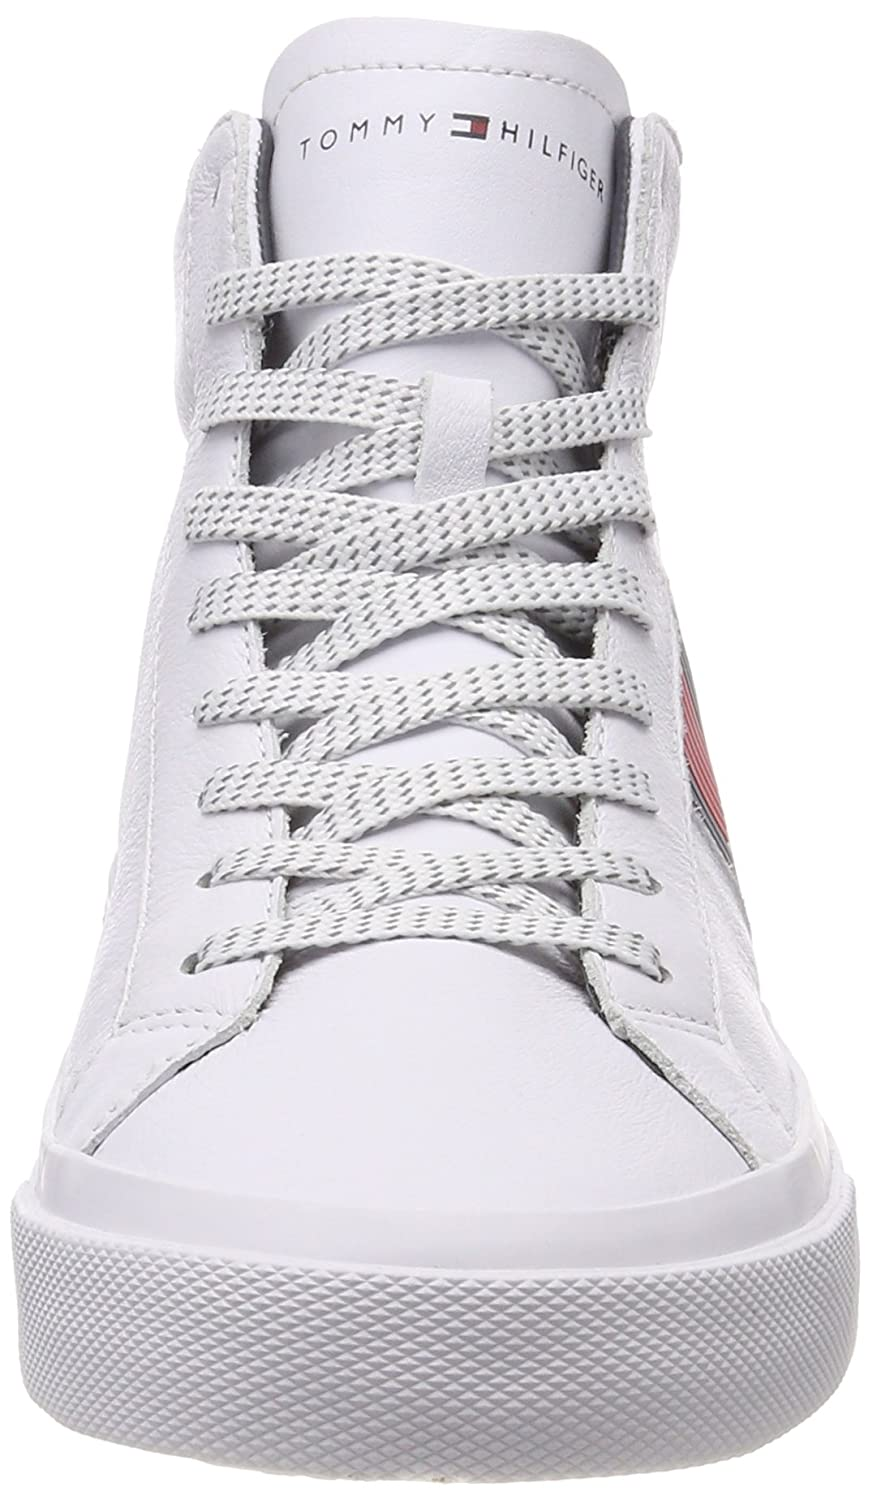 ba1ef2b8a117 Tommy Hilfiger Men s Flag Detail High Leather Sneaker Hi-Top Trainers   Amazon.co.uk  Shoes   Bags